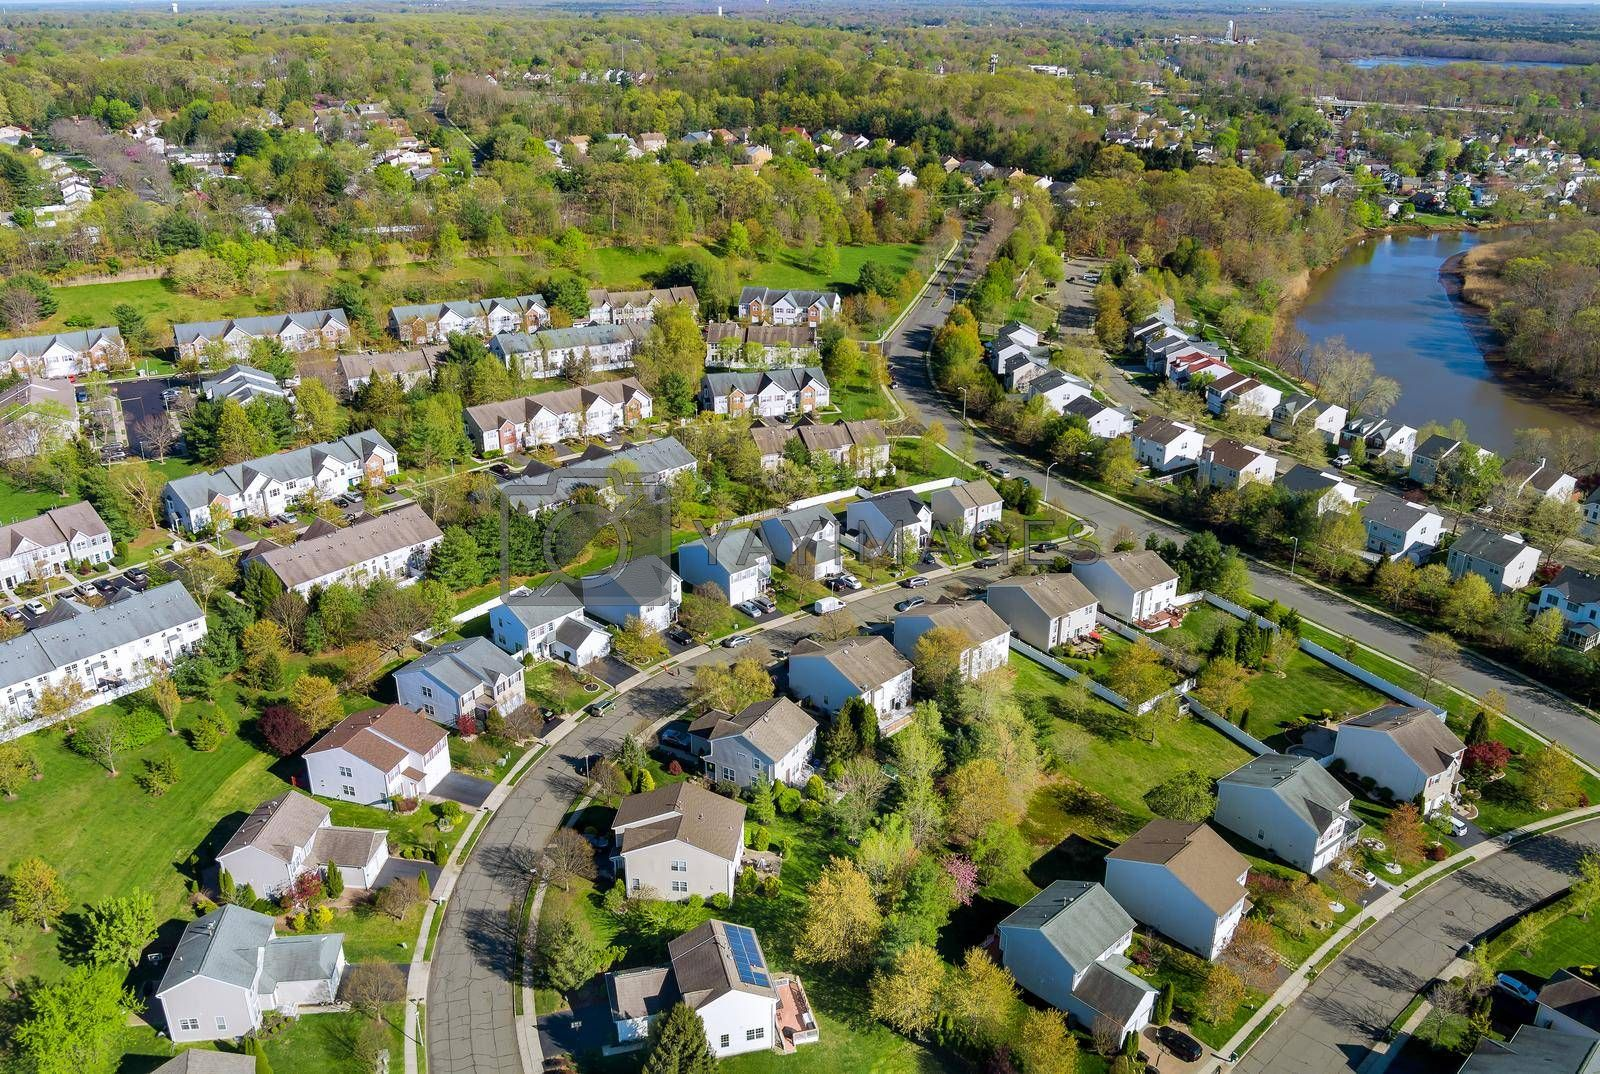 Aerial view of small american town residential houses neighborhood complex at suburban housing development